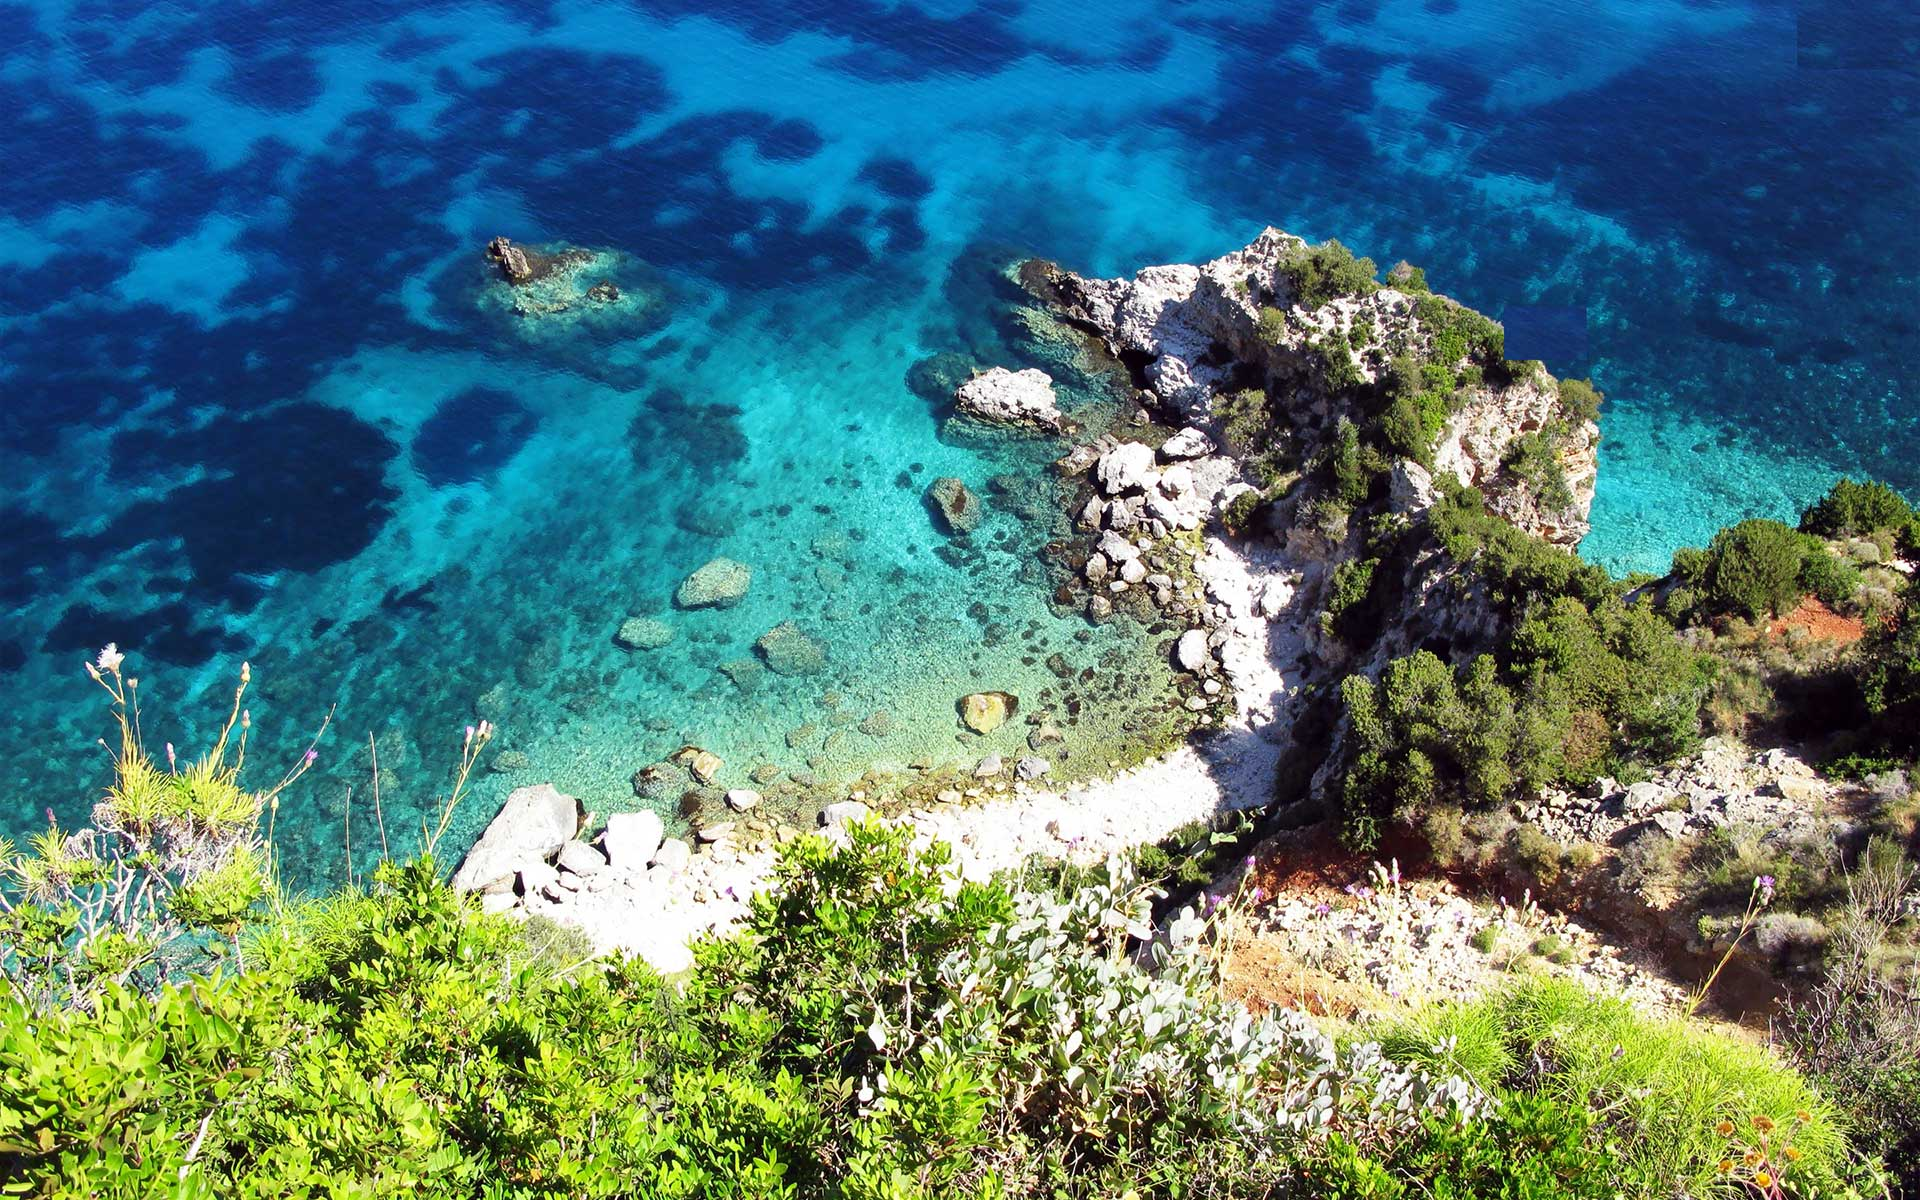 Yacht Charter in Kefalonia island Sailing in Greece and GreekSunYachts